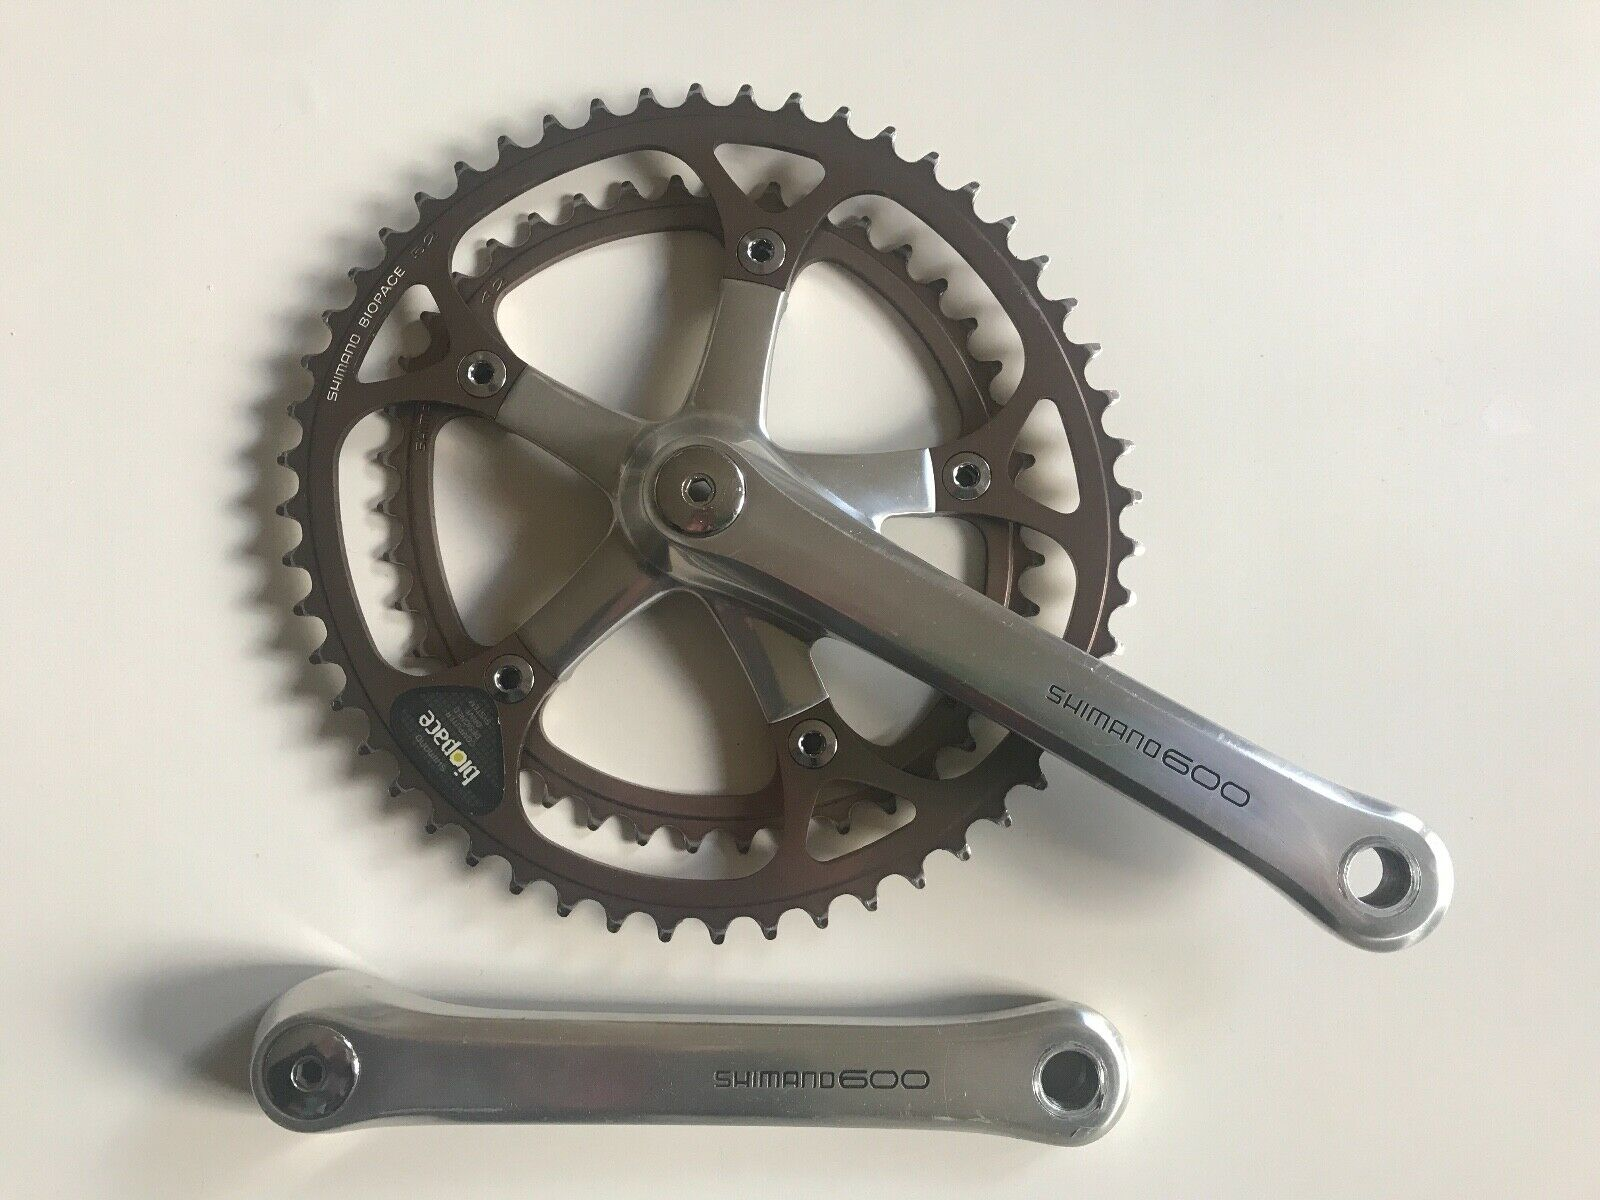 Shimano 600EX crankset FC-6207 with Biopace 52 42t, 175mm, used